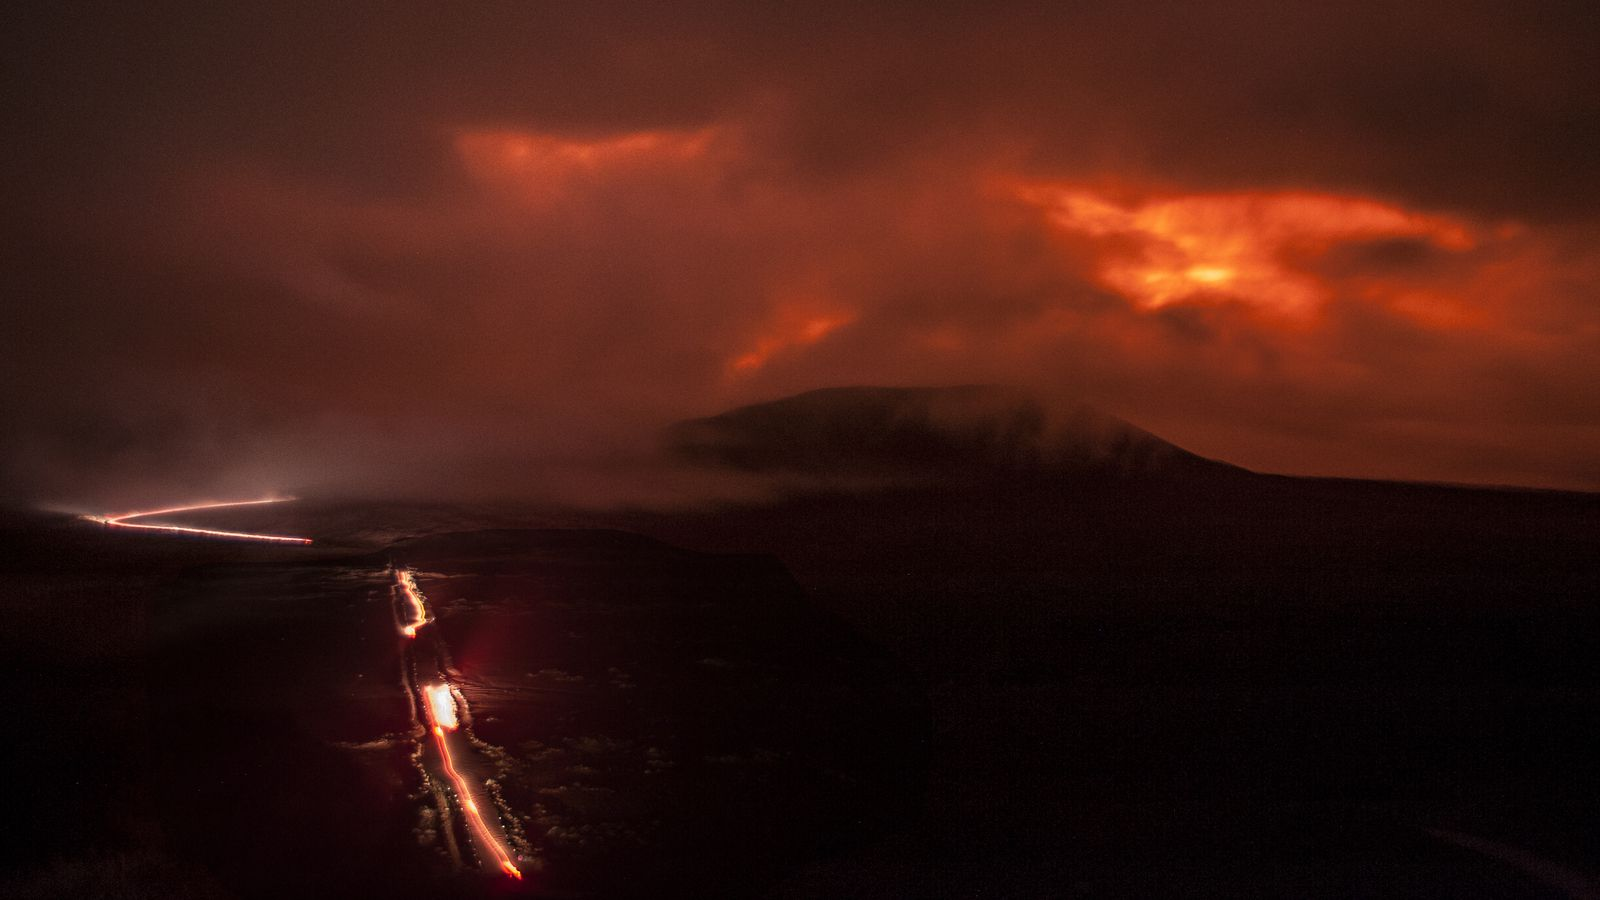 Piton de La Fournaise - upon arrival on the volcano, the atmosphere takes shape - photo © Thierry Sluys 12..04.2021